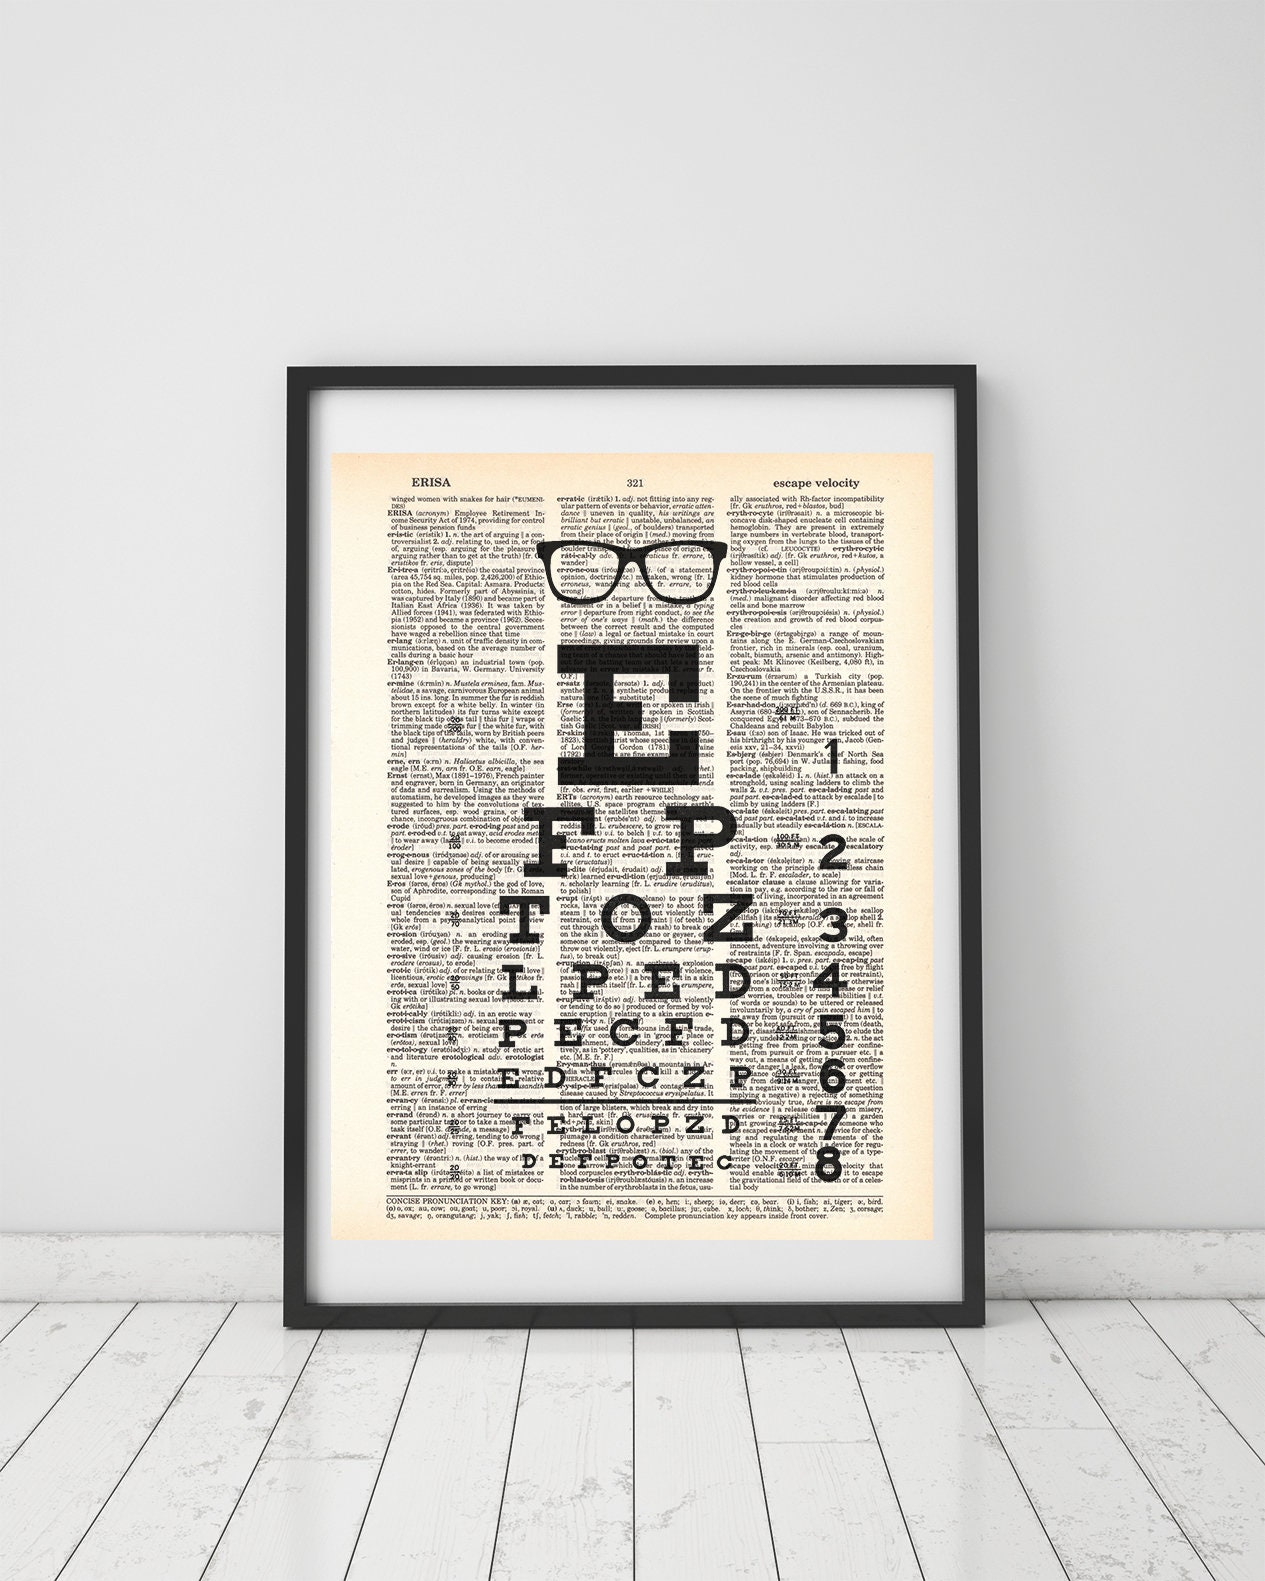 Reduced snellen eye chart images chart design ideas print eye chart image collections chart design ideas where can i buy a snellen eye chart nvjuhfo Choice Image